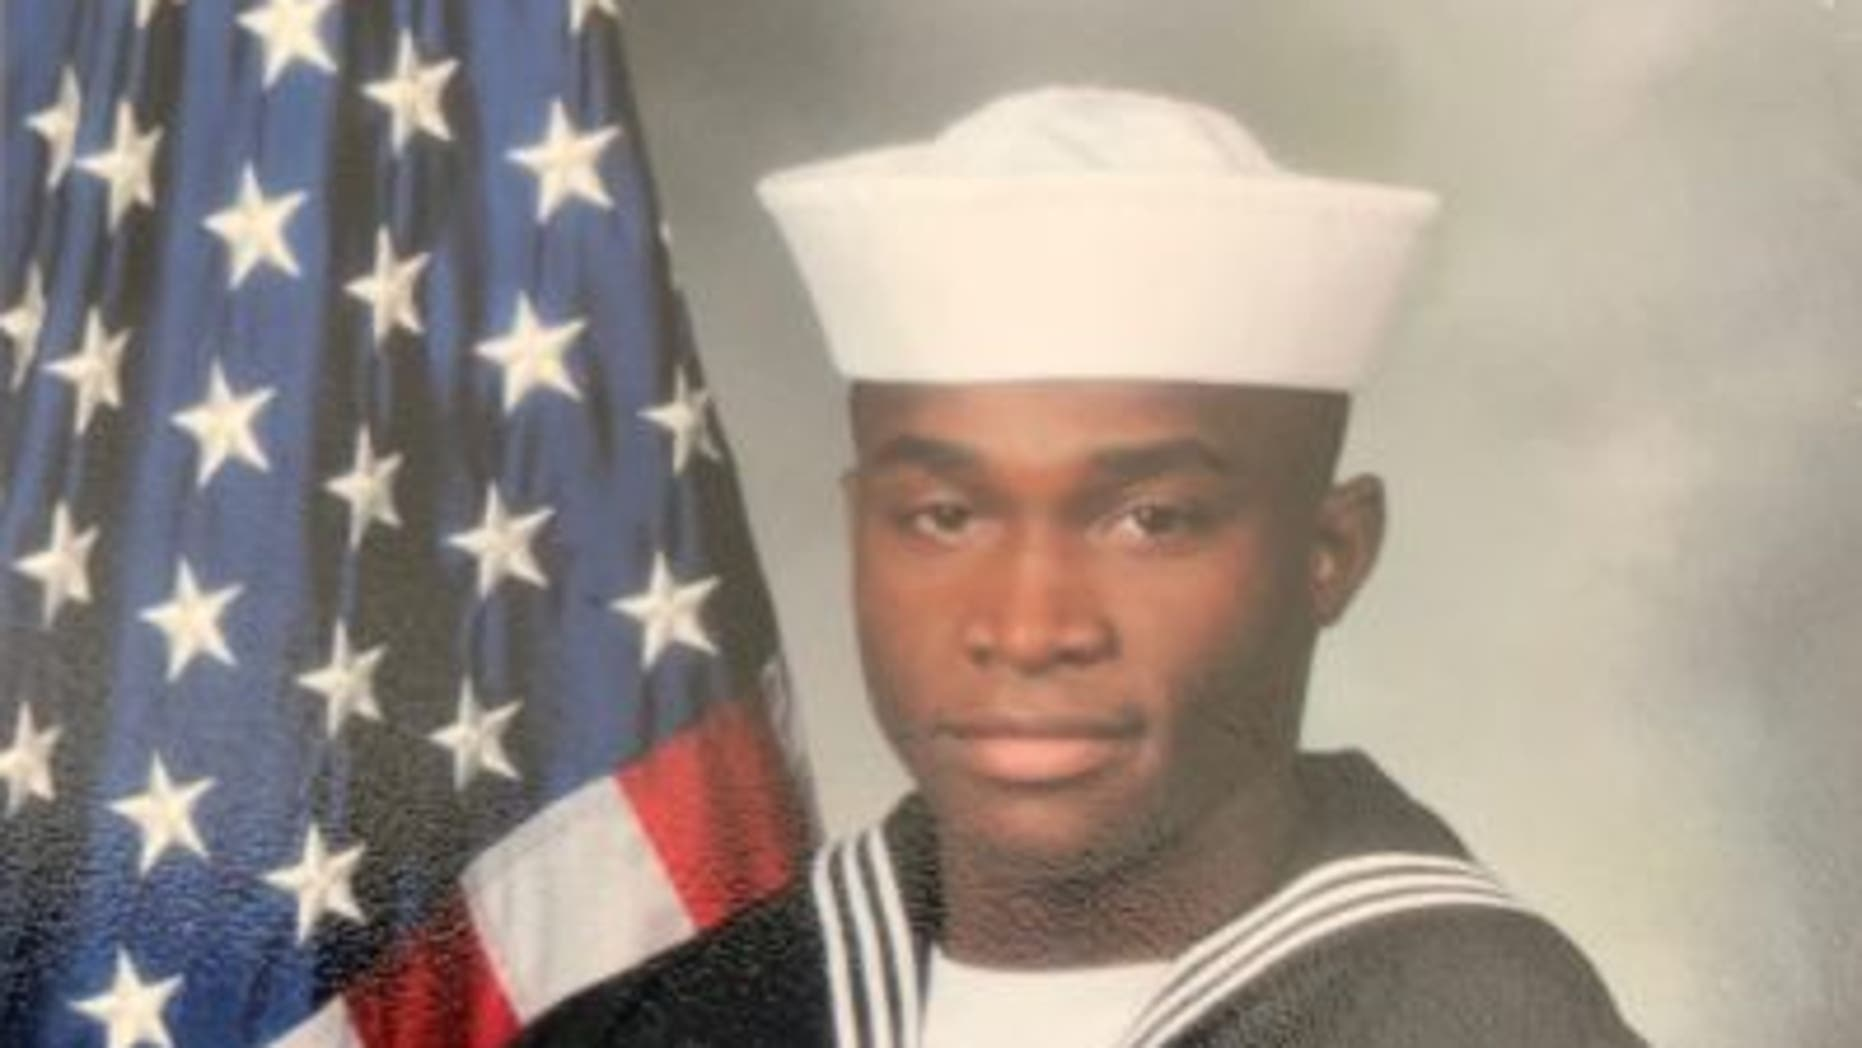 Curtis Adams, 21, the victim, an active duty member of the Navy in San Diego.